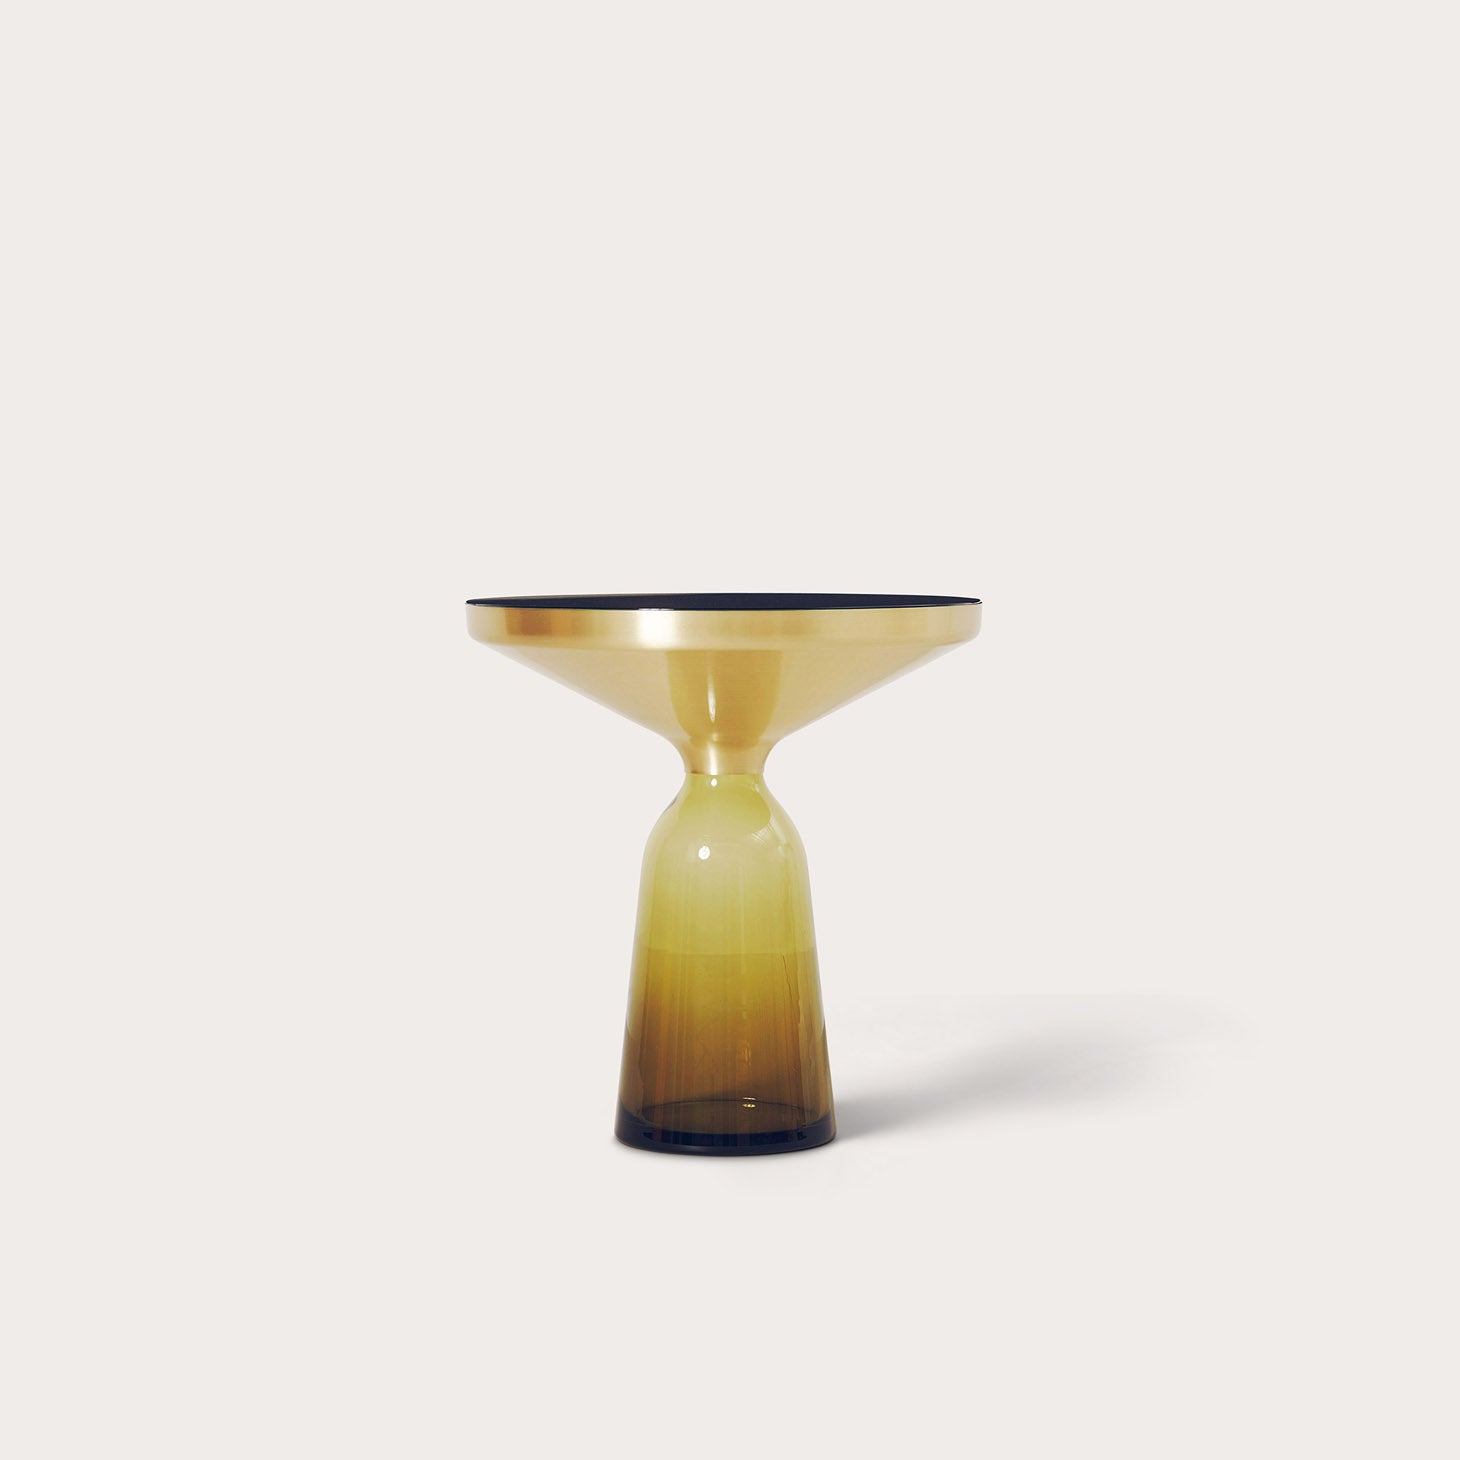 Bell Table Tables Sebastian Herkner Designer Furniture Sku: 001-230-10165